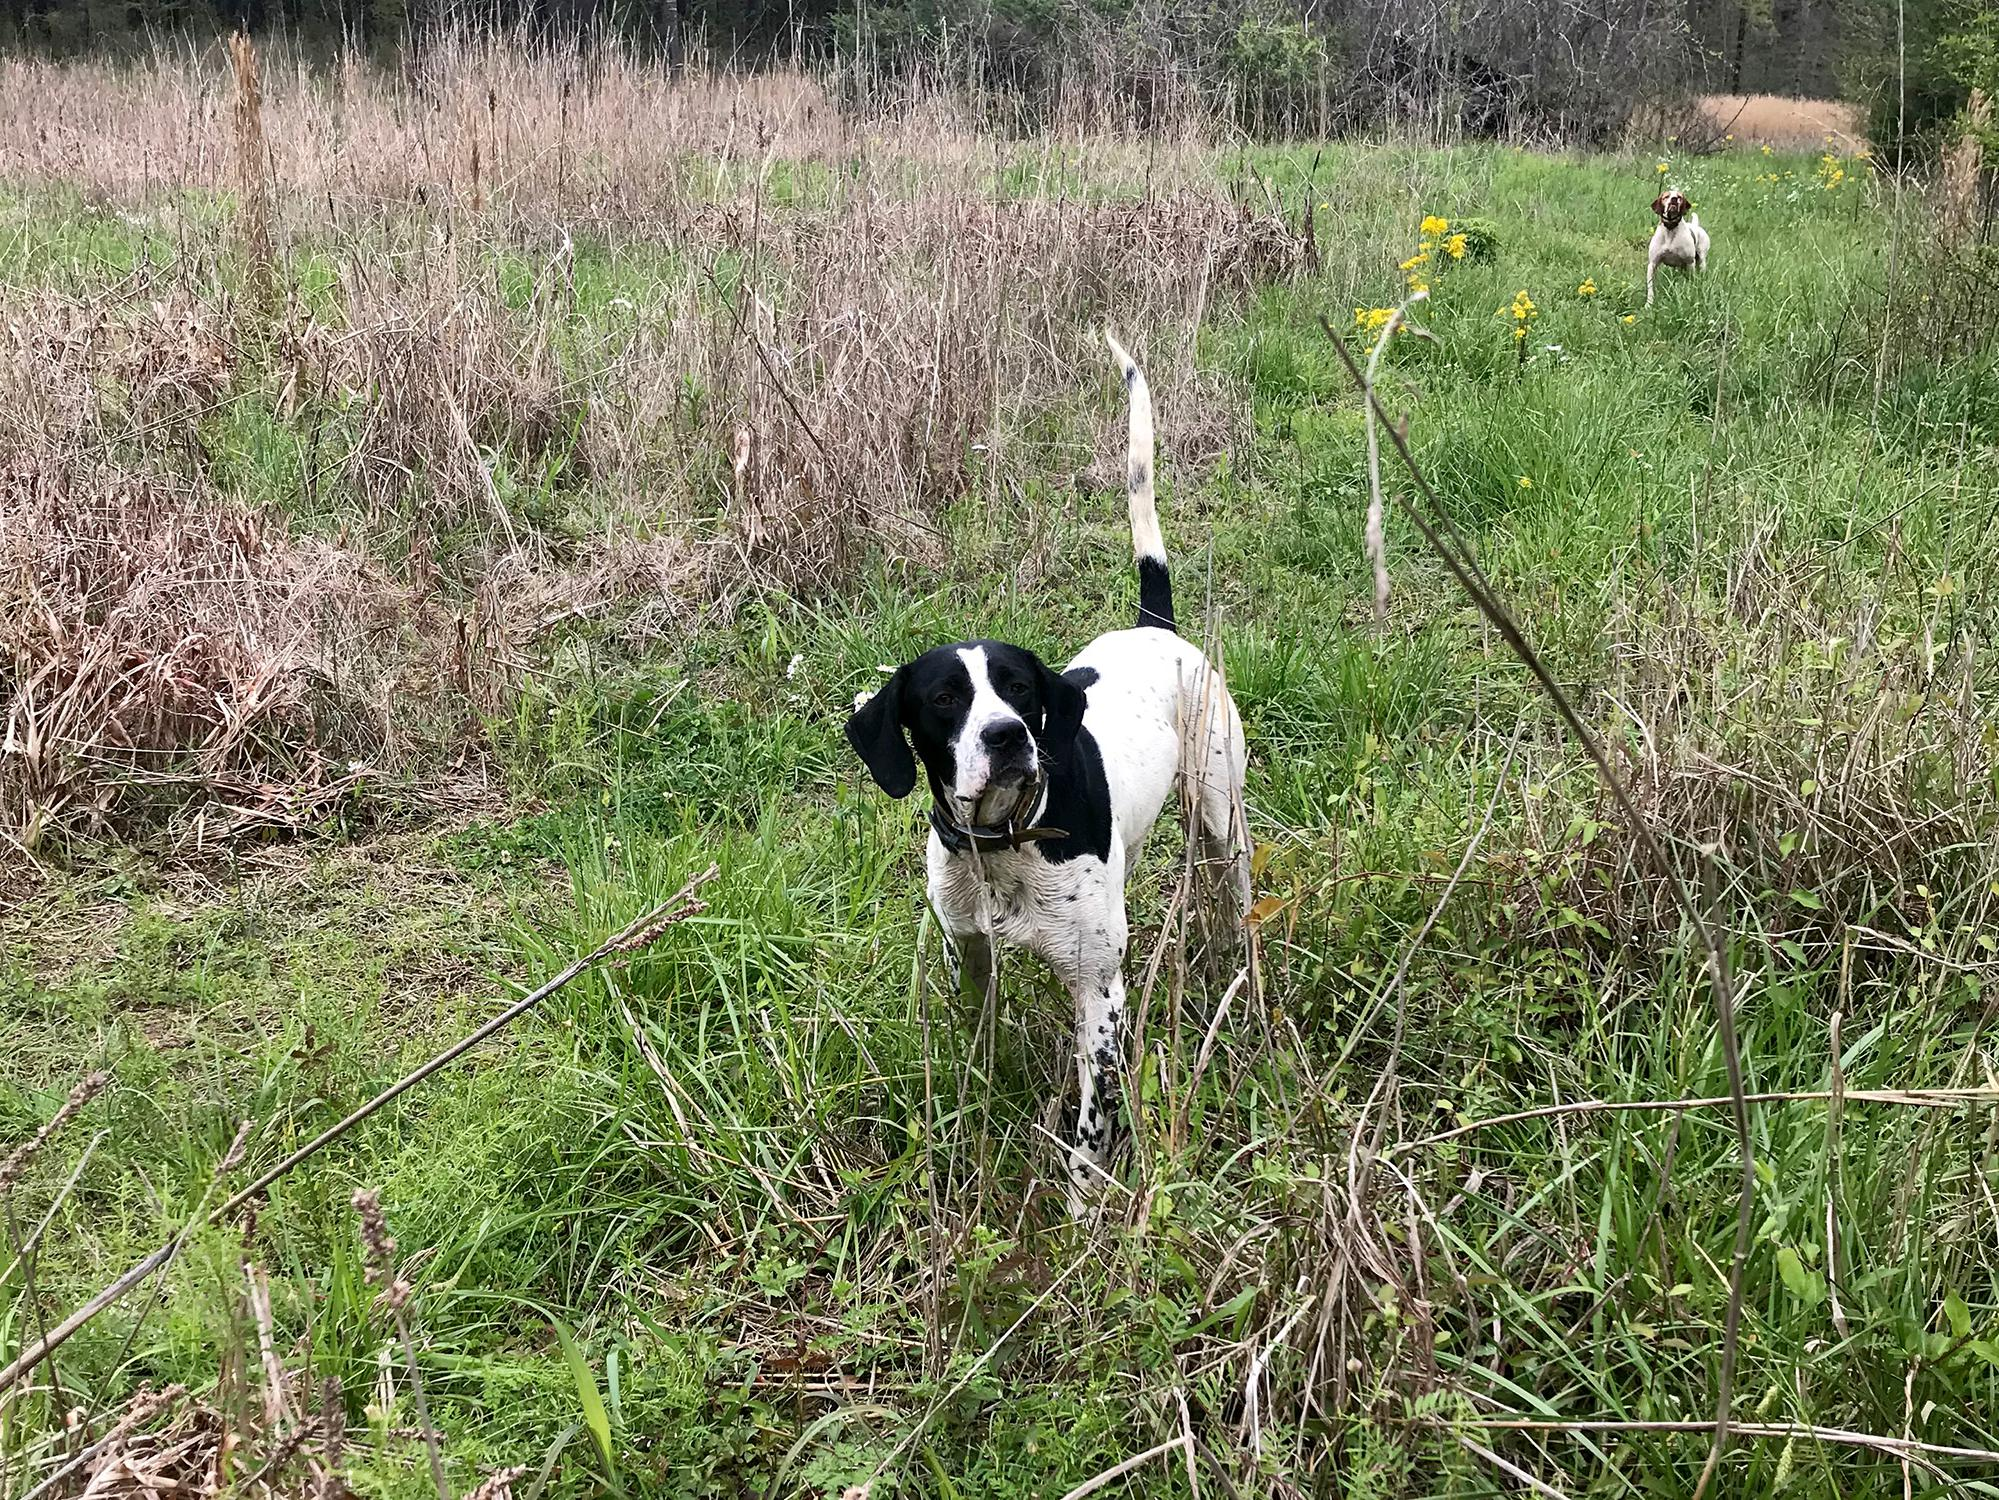 A black and white dog stands alert with his tail up and ears forward in tall grass with trees in the background.